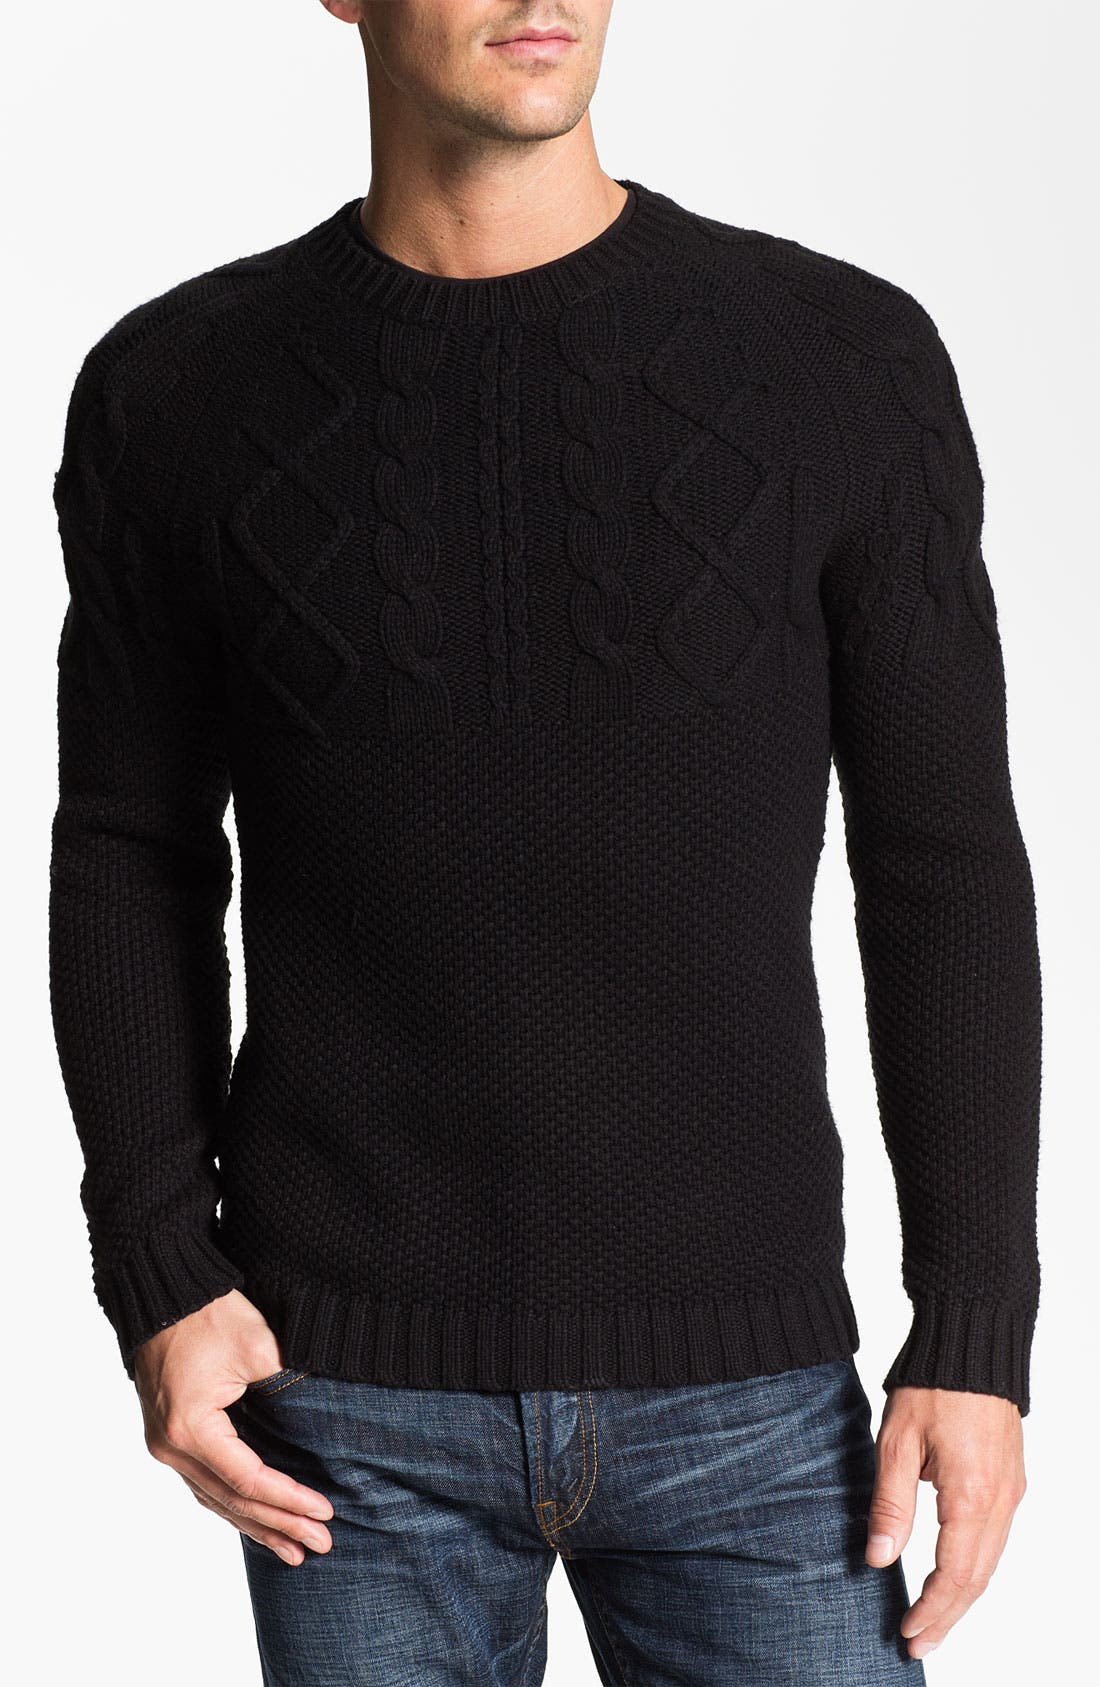 Main Image - J.C. Rags Cable Knit Sweater